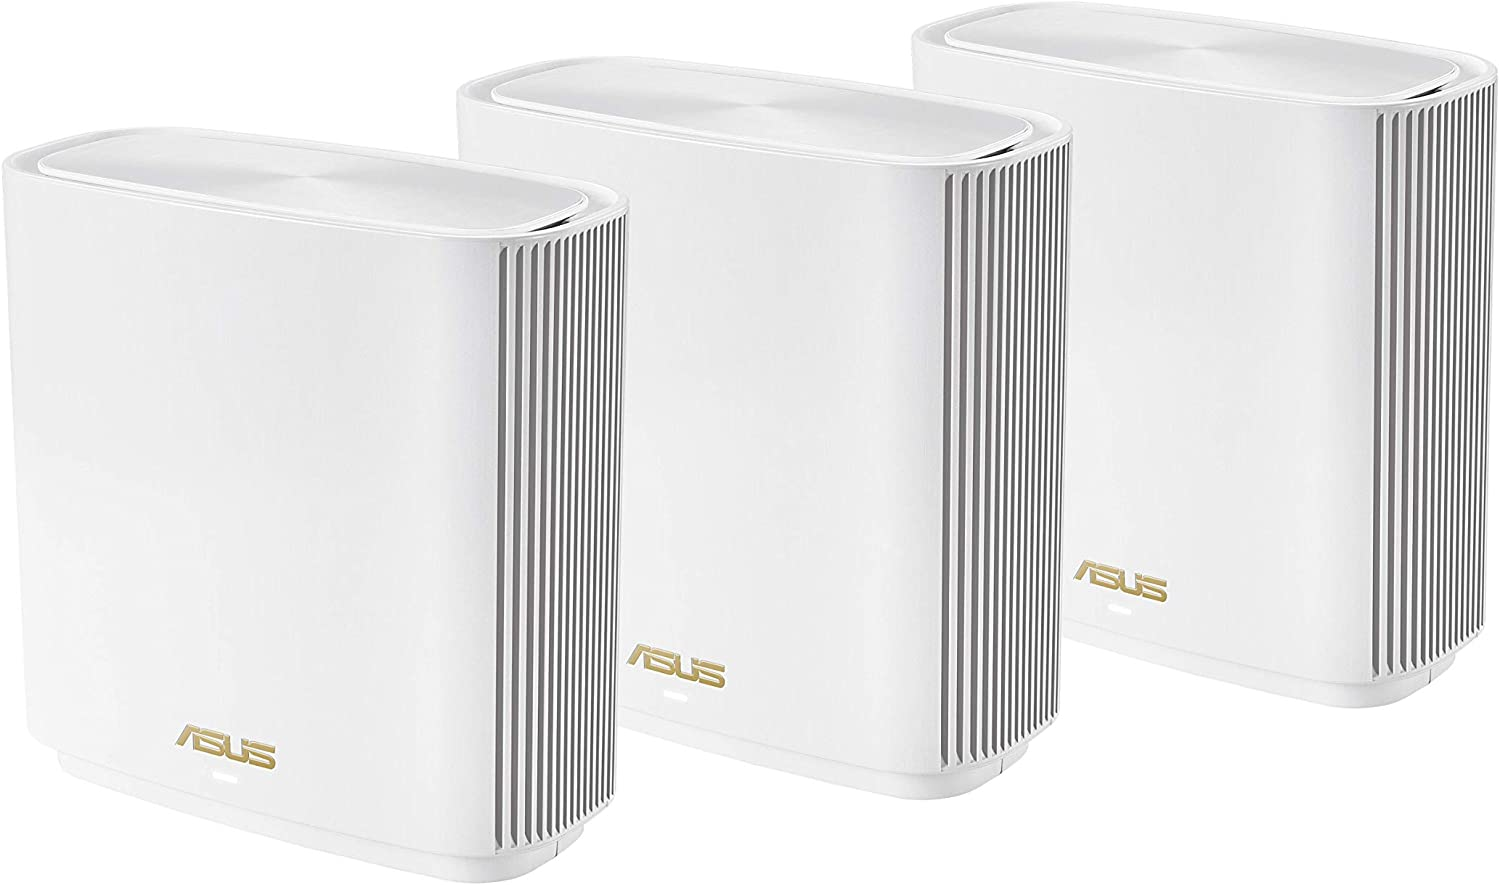 ASUS ZenWiFi AX Whole-Home Tri-Band Mesh WiFi 6 System (White) - 3 Pack, Coverage up to 5,500 sq.ft or 6+Rooms, 6.6Gbps, WiFi, 3 SSIDs, Life-time Free Network Security and Parental Controls, 2.5G Port